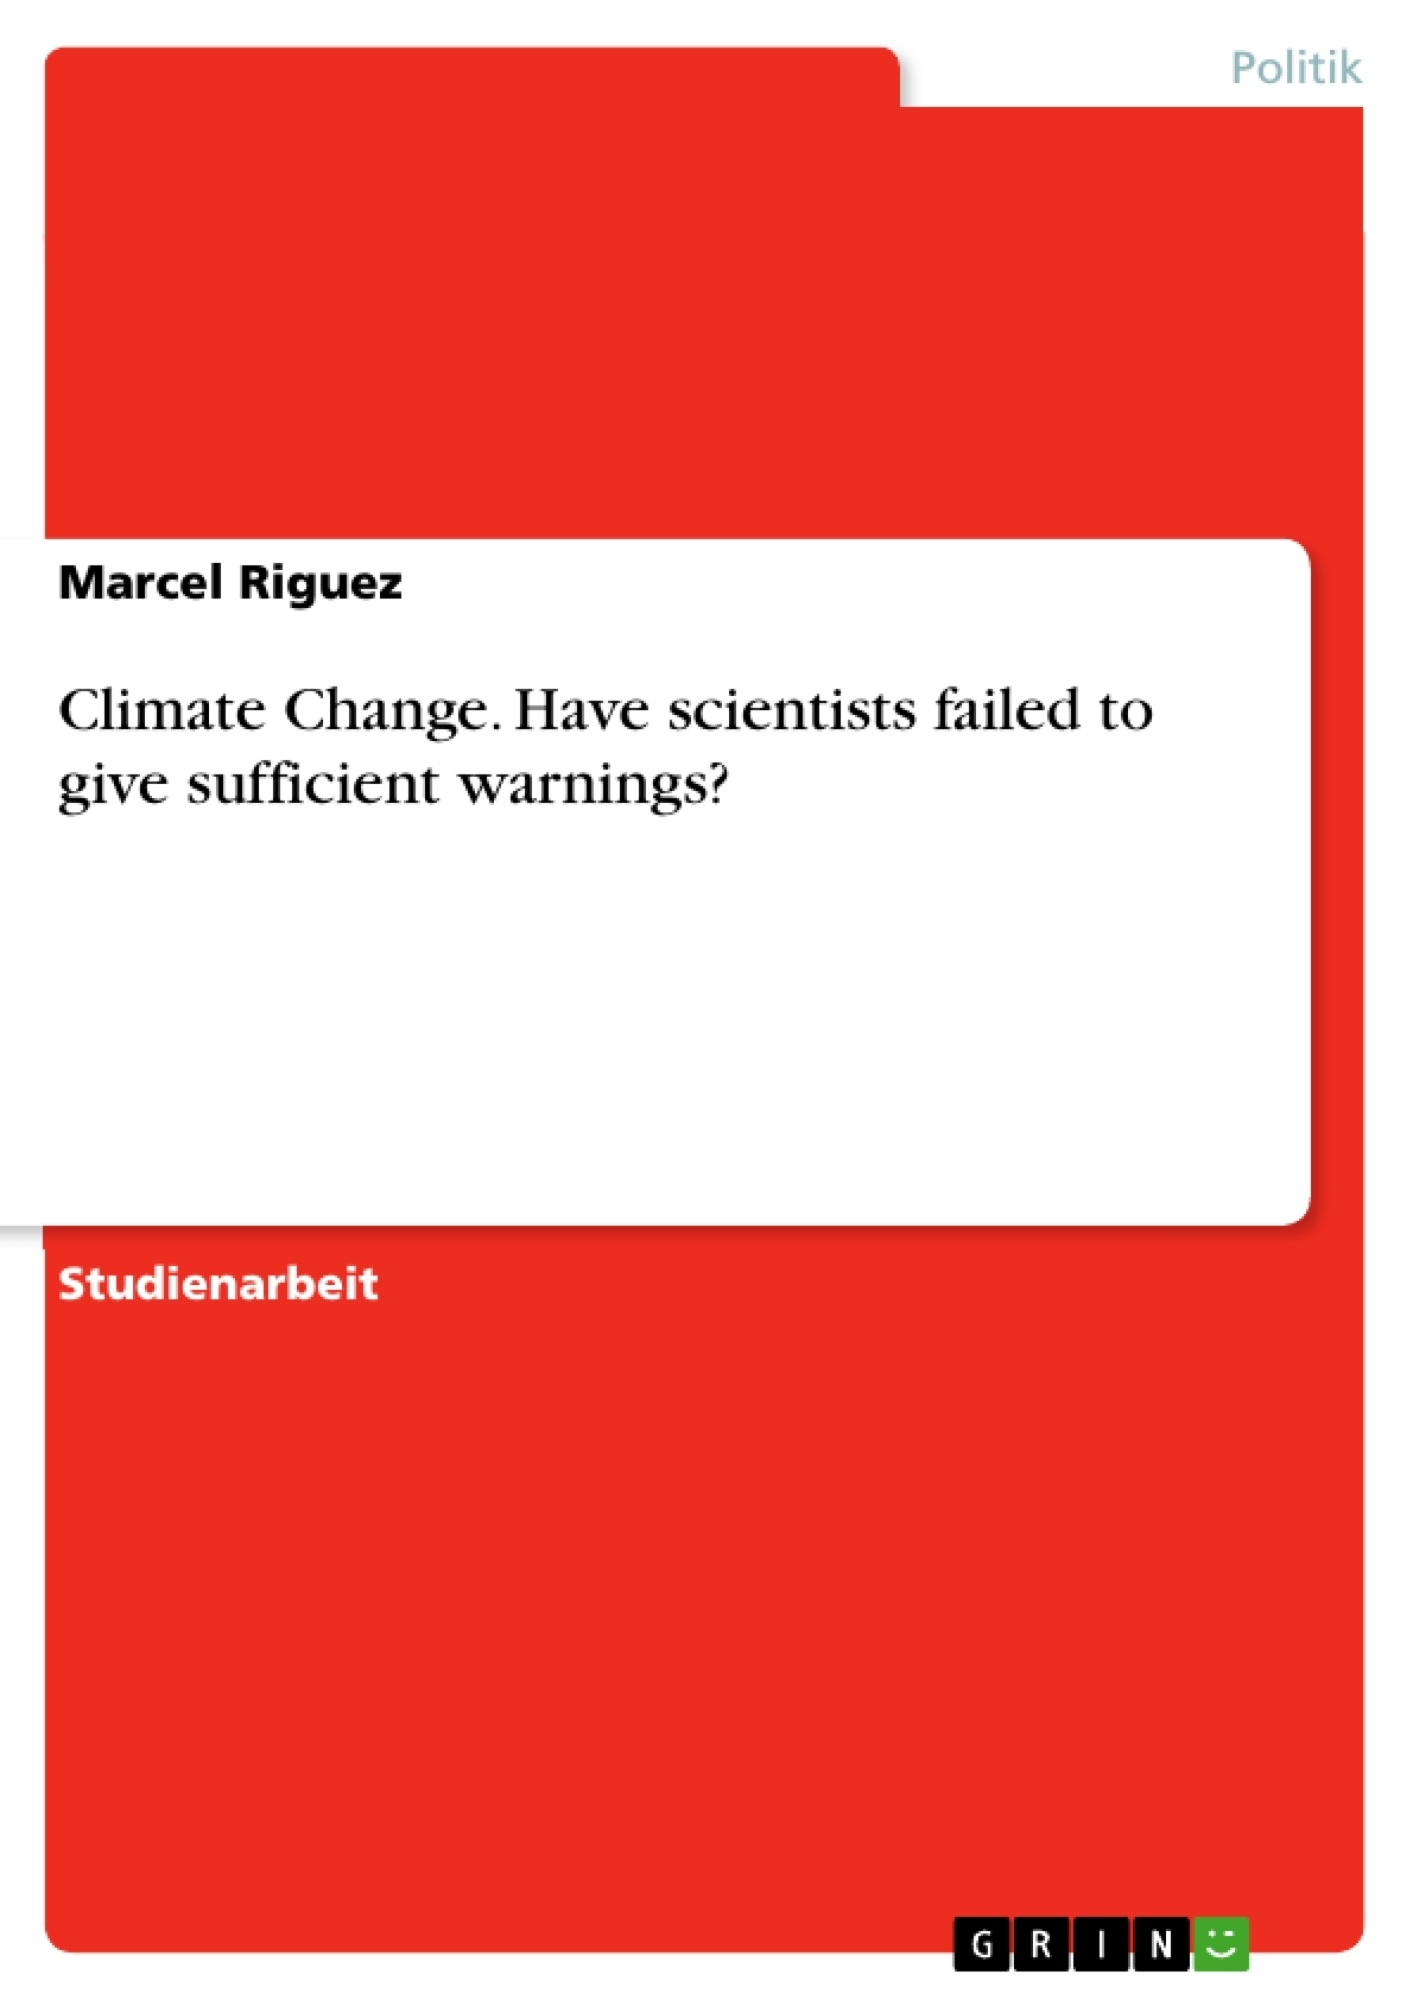 Titel: Climate Change. Have scientists failed to give sufficient warnings?